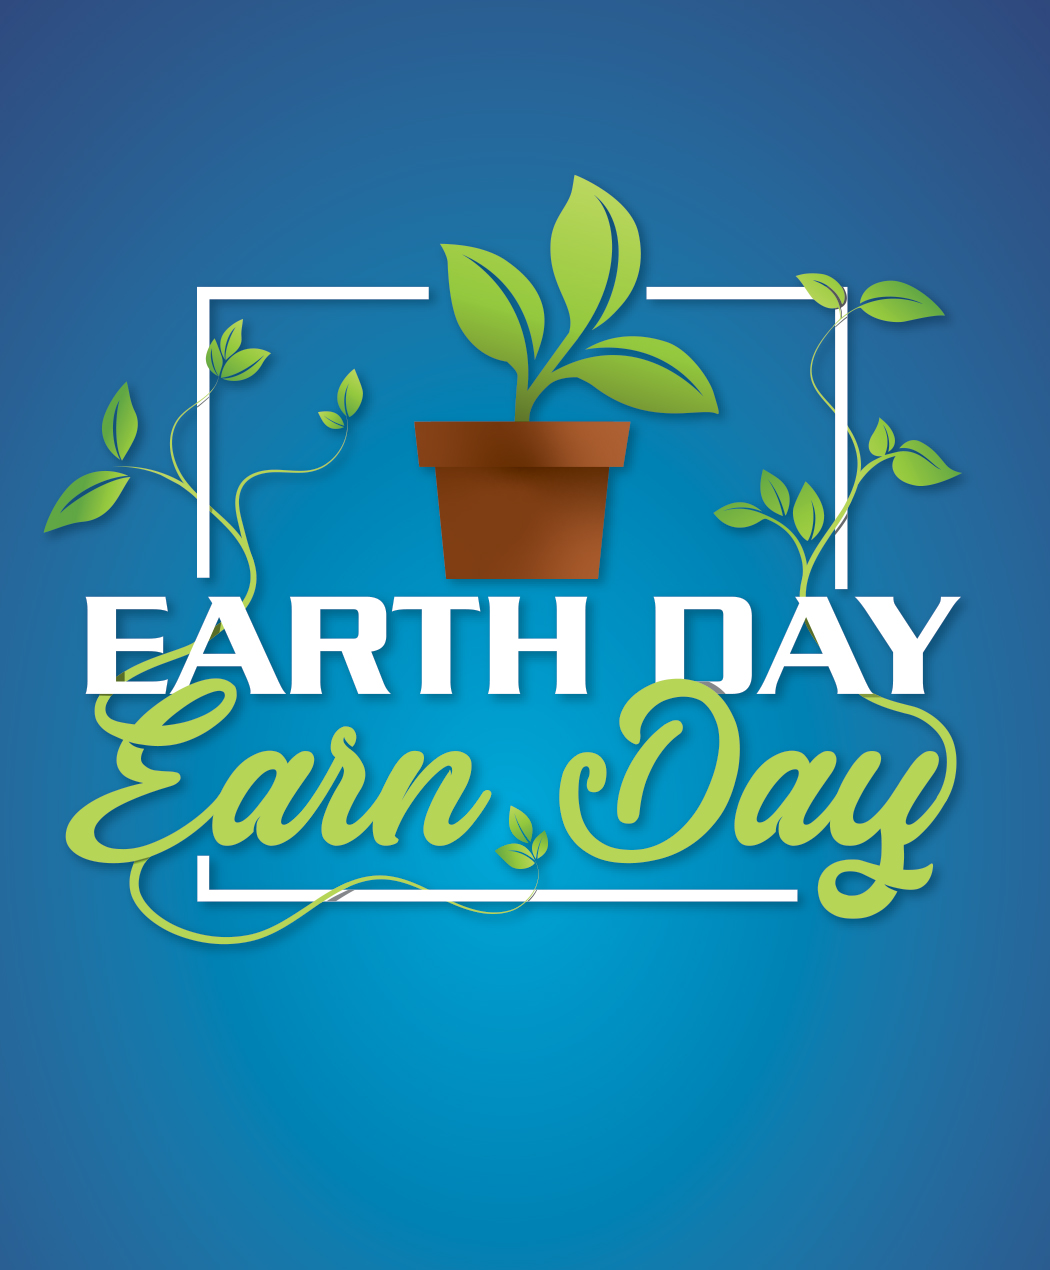 Earth Day Earn Day